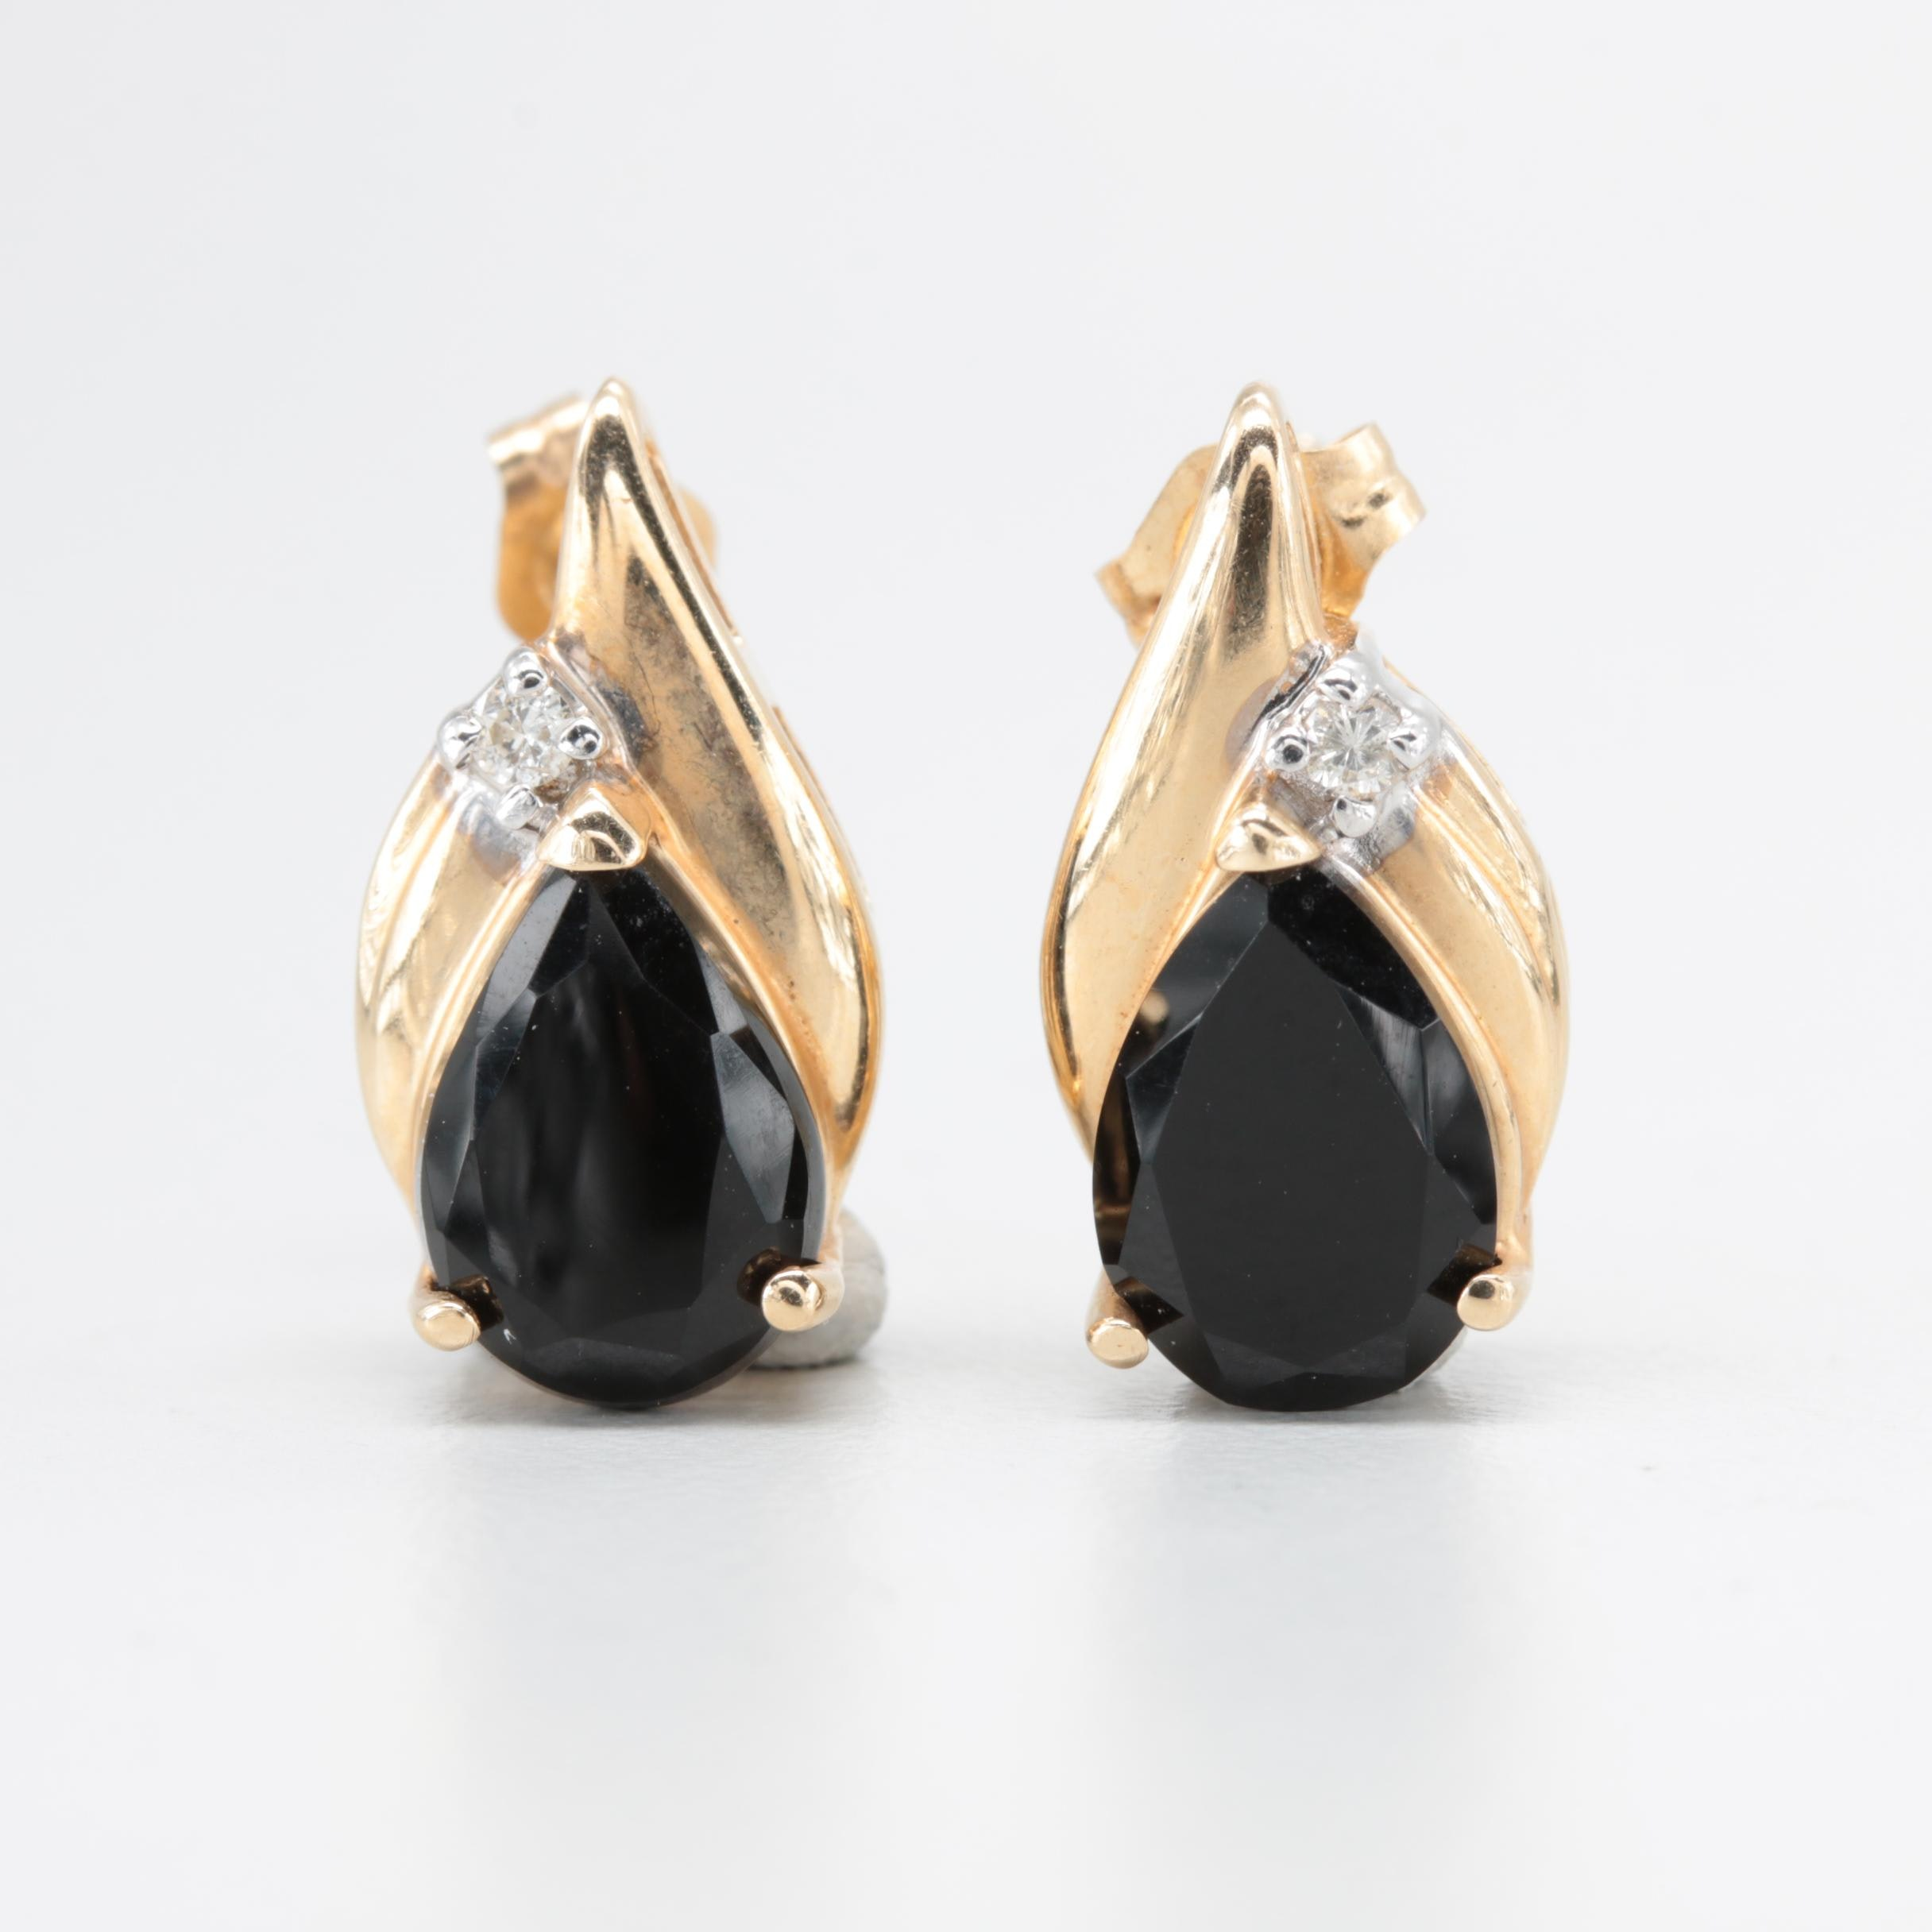 Alwand Vahan 14K Yellow Gold Black Onyx and Diamond Earrings